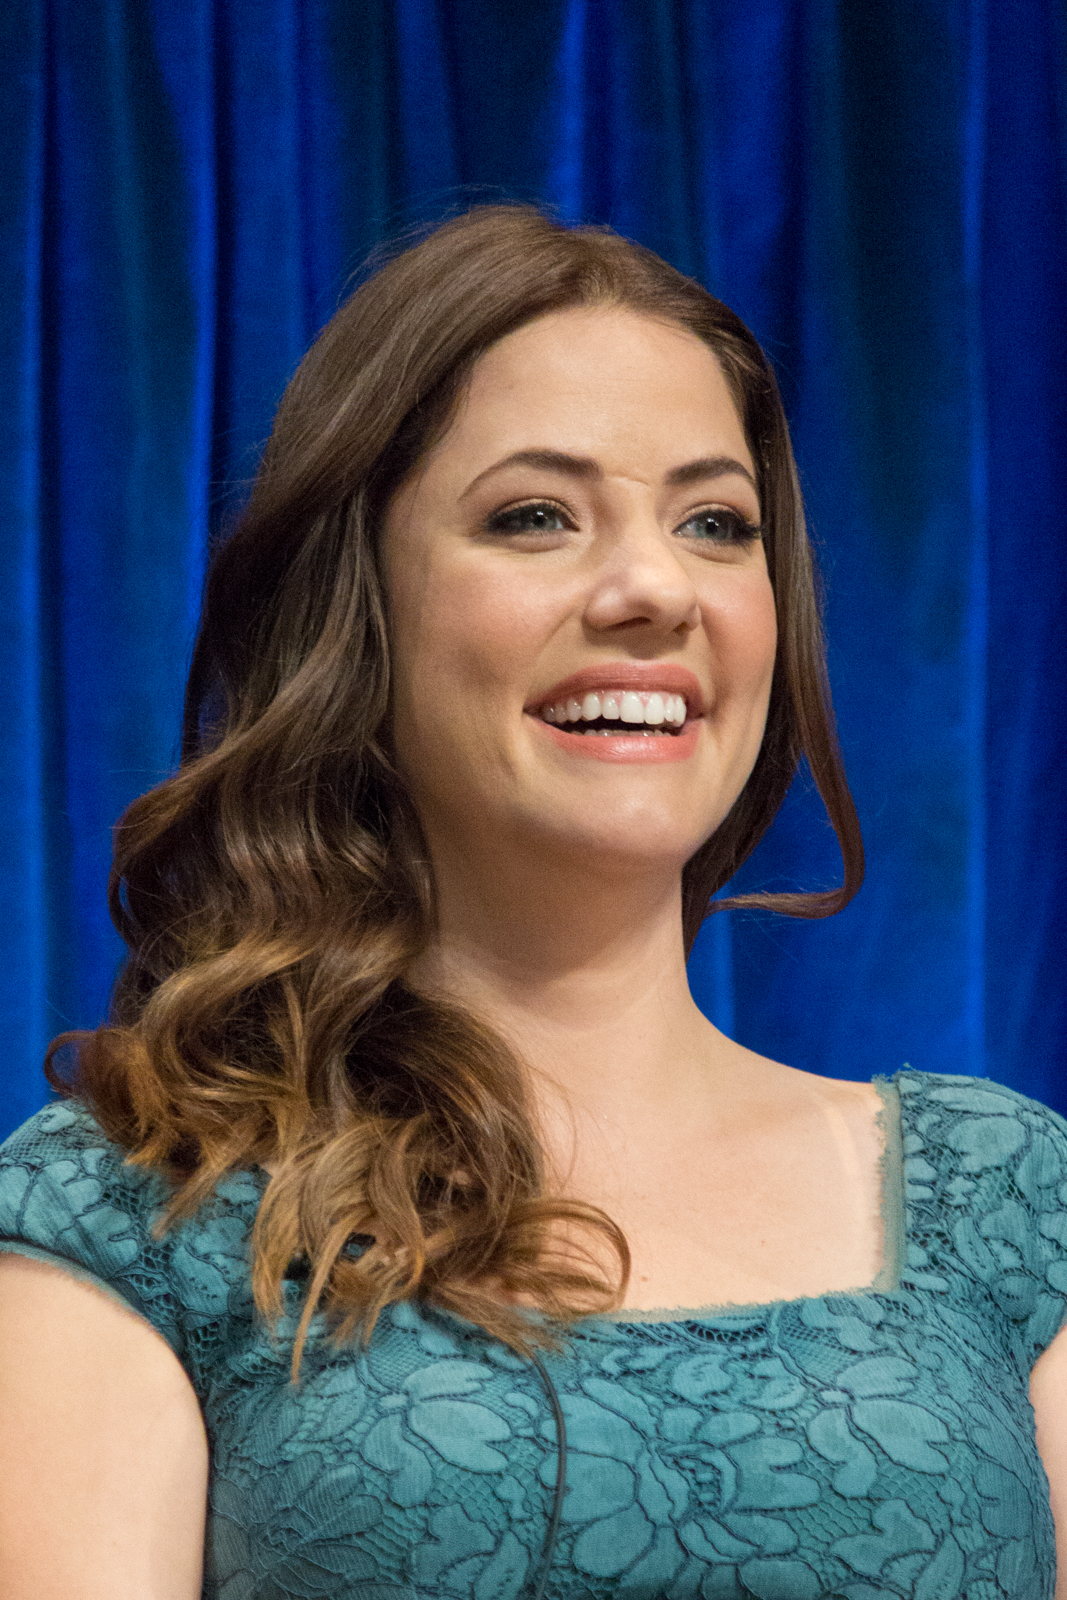 The 37-year old daughter of father (?) and mother(?) Julie Gonzalo in 2019 photo. Julie Gonzalo earned a  million dollar salary - leaving the net worth at 2 million in 2019